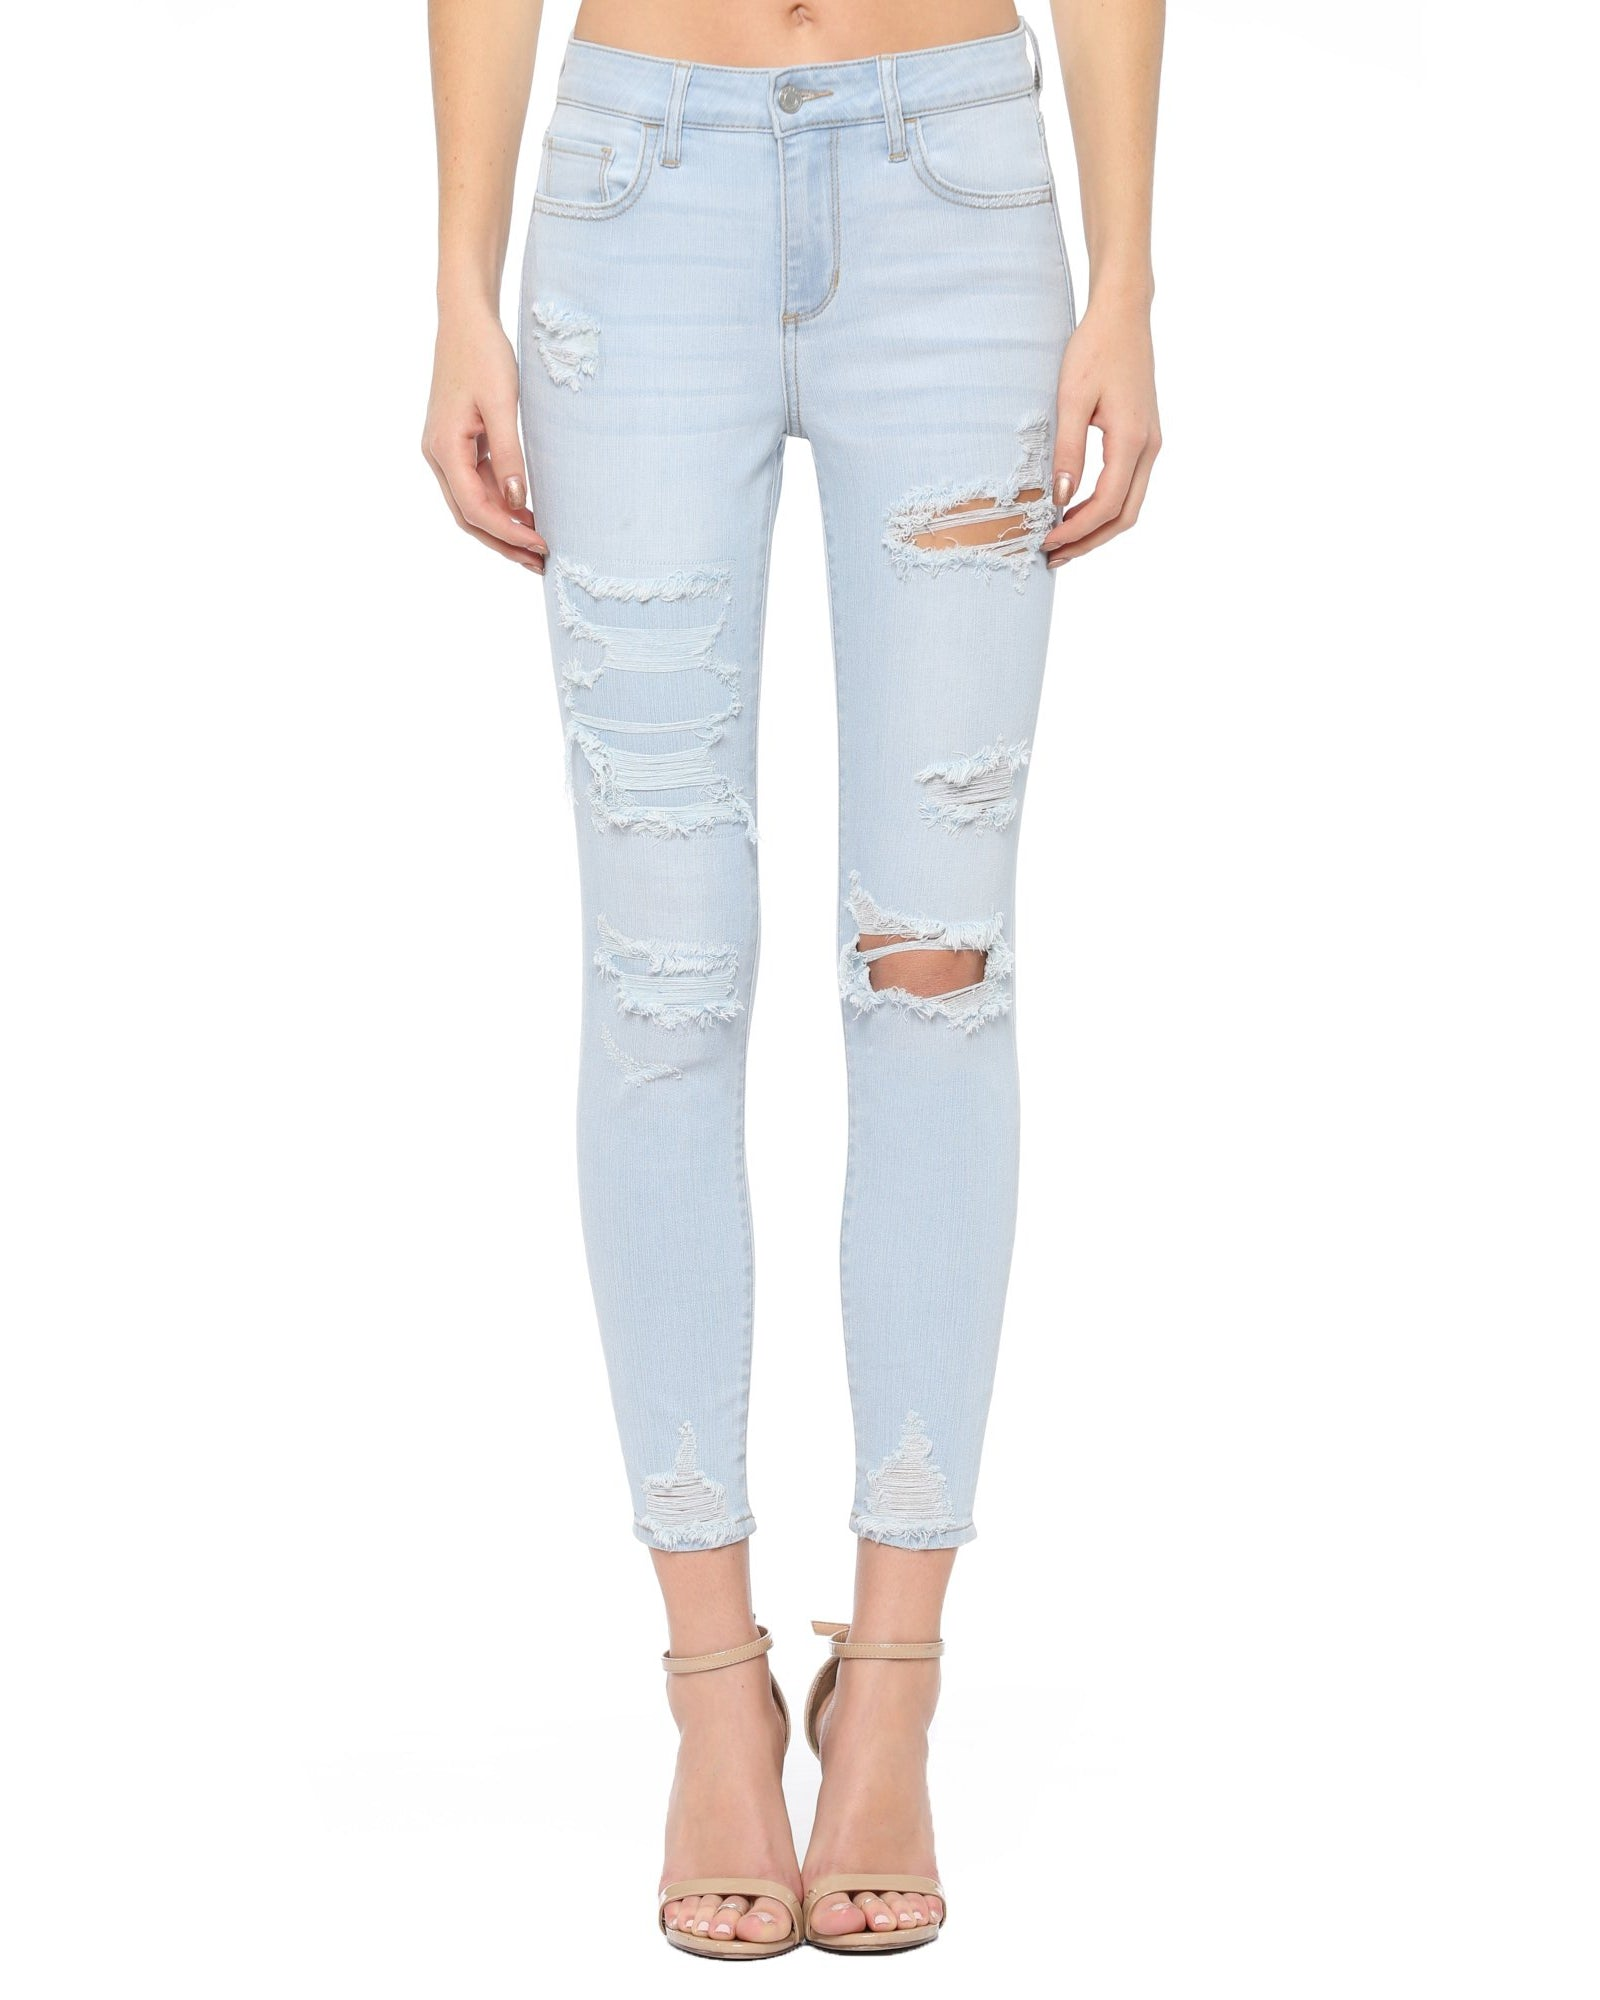 New Arrival!! Cello Mid Rise Distresses Cropped Skinny Jeans - Light Denim